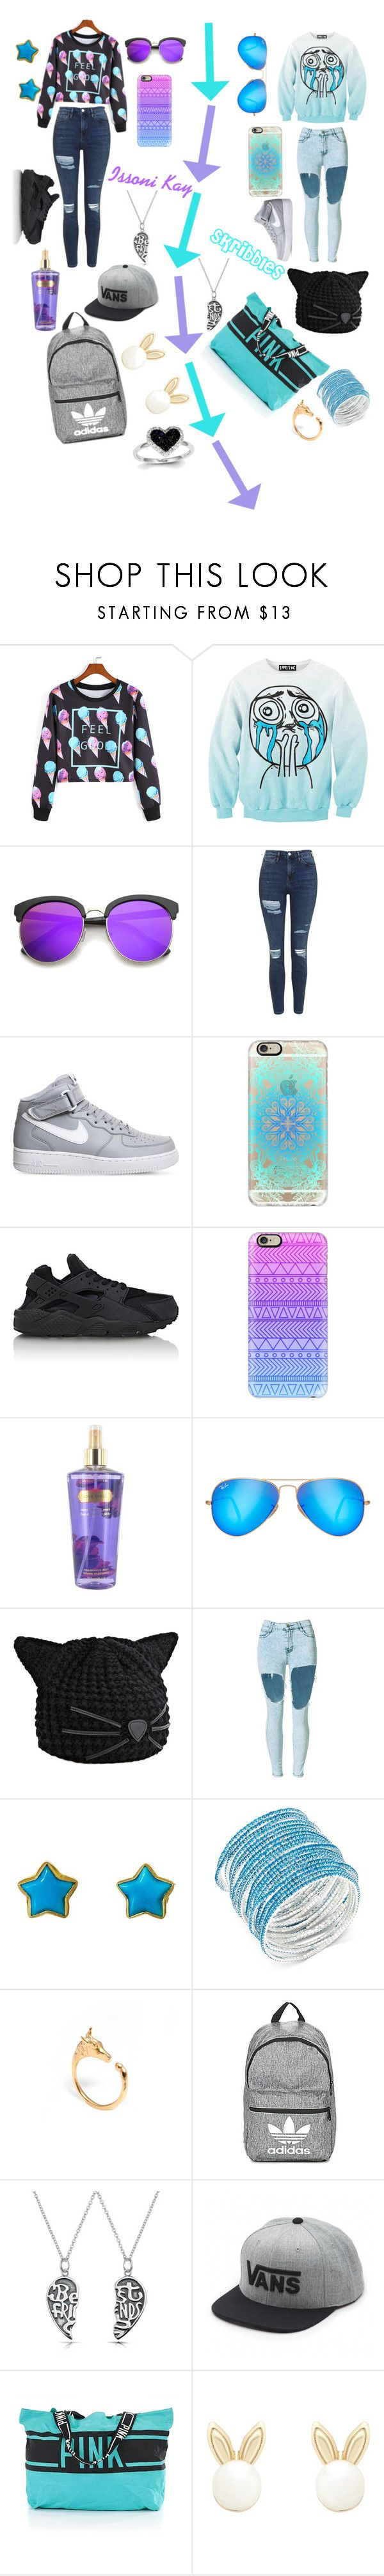 """MY best friend"" by babykaaat ❤ liked on Polyvore featuring Chicnova Fashion, ZeroUV, Topshop, NIKE, Casetify, Ray-Ban, Karl Lagerfeld, Marie Hélène de Taillac, ABS by Allen Schwartz and LeiVanKash"